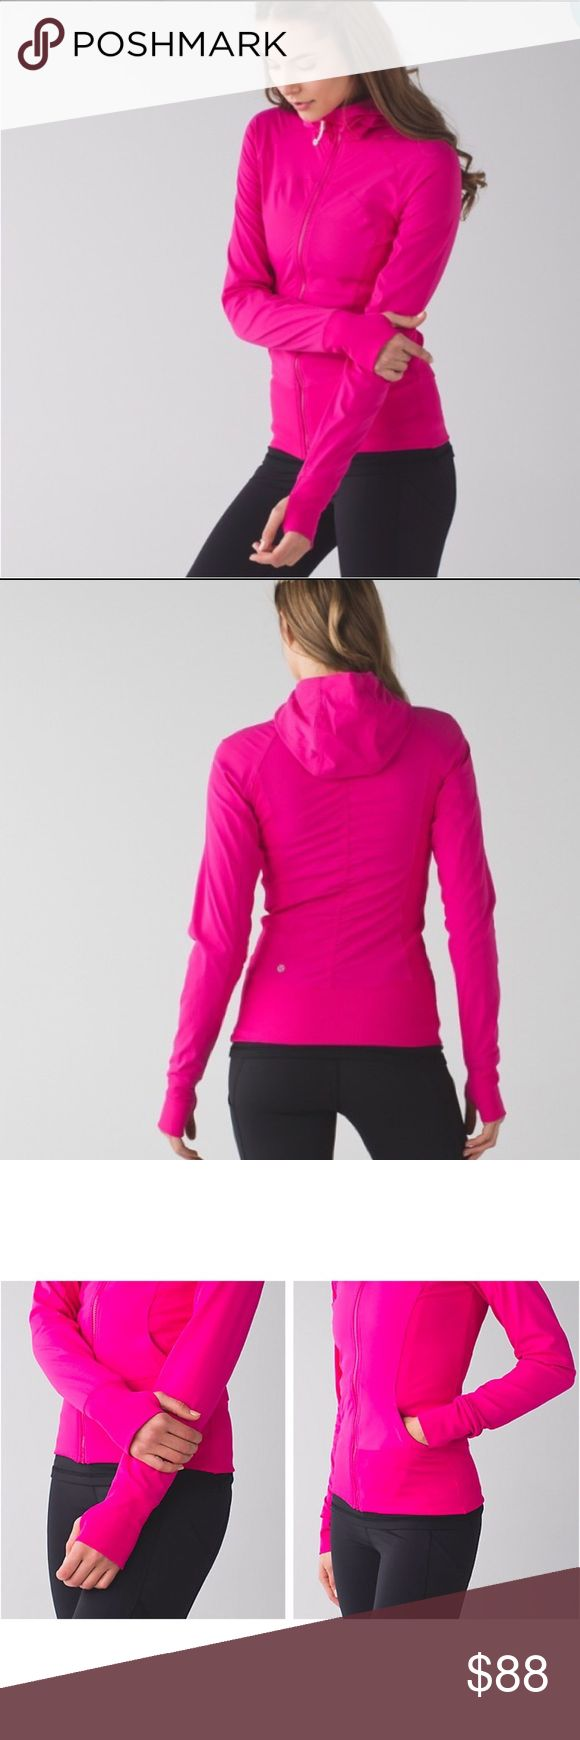 Lululemon In Flux Jacket Incredible In Flux Jacket from Lululemon. Like new. Color is Jewelled magenta and is a stunning bright pink in person. Slim fitting lined jacket. Luon fabric. Thumb holes. Ribbed side panels. Size 4 and runs very snug. I would consider 2 and XXS and 4 an XS. lululemon athletica Jackets & Coats